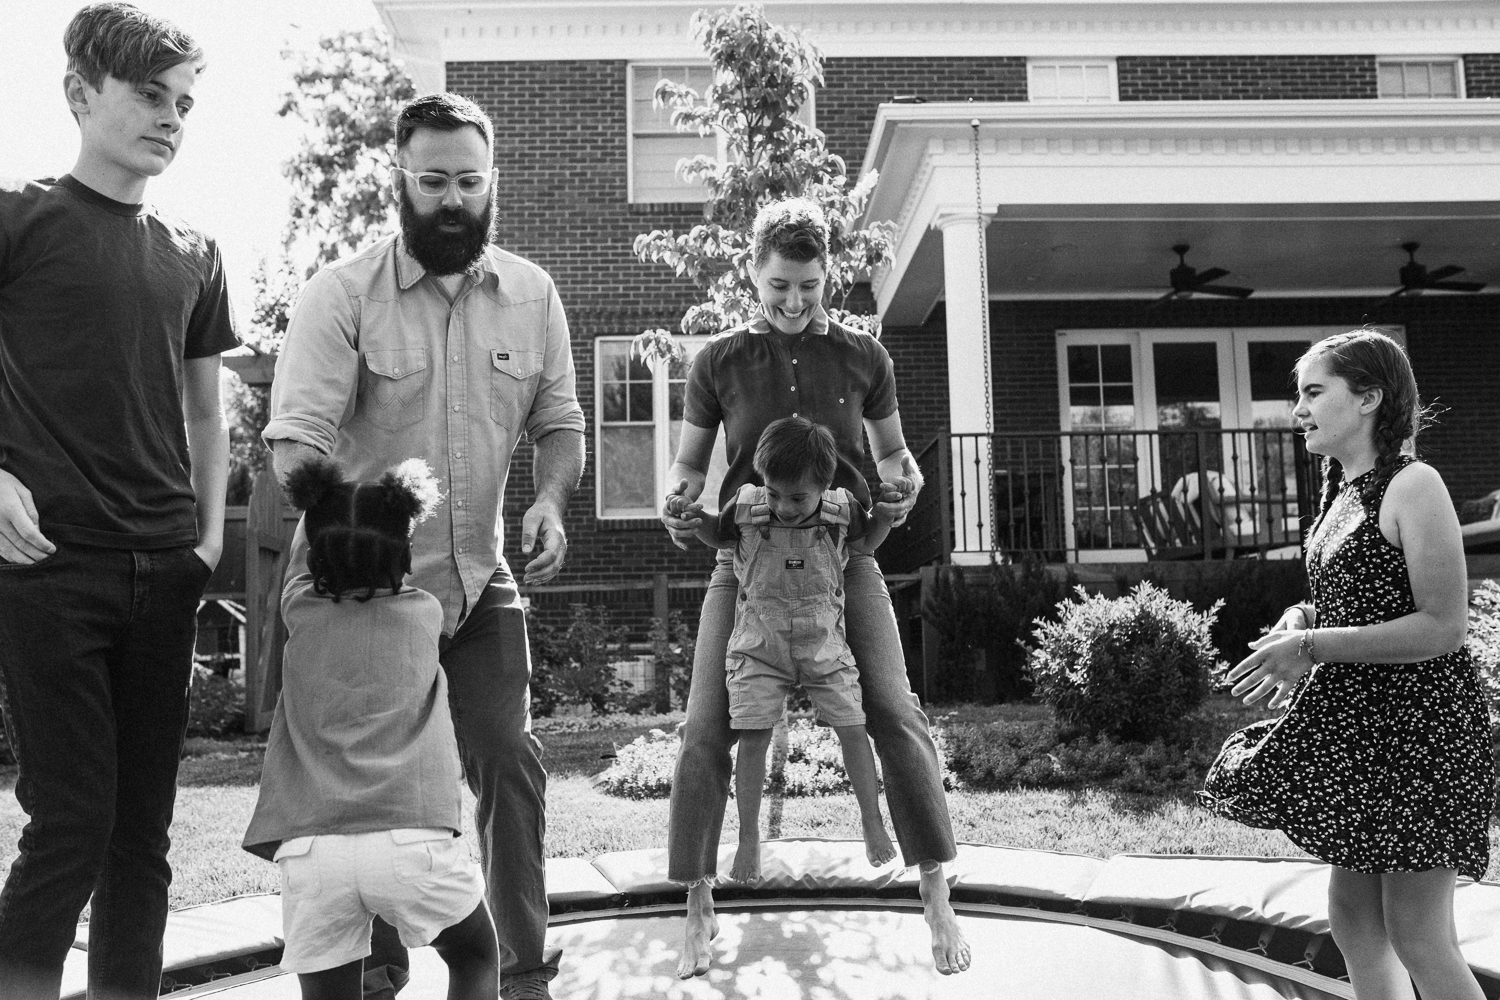 candid-black-and-white-family-photo-jumping-on-trampoline-during-in-home-session-with-jen-fairchild-in-salt-lake-city-utah